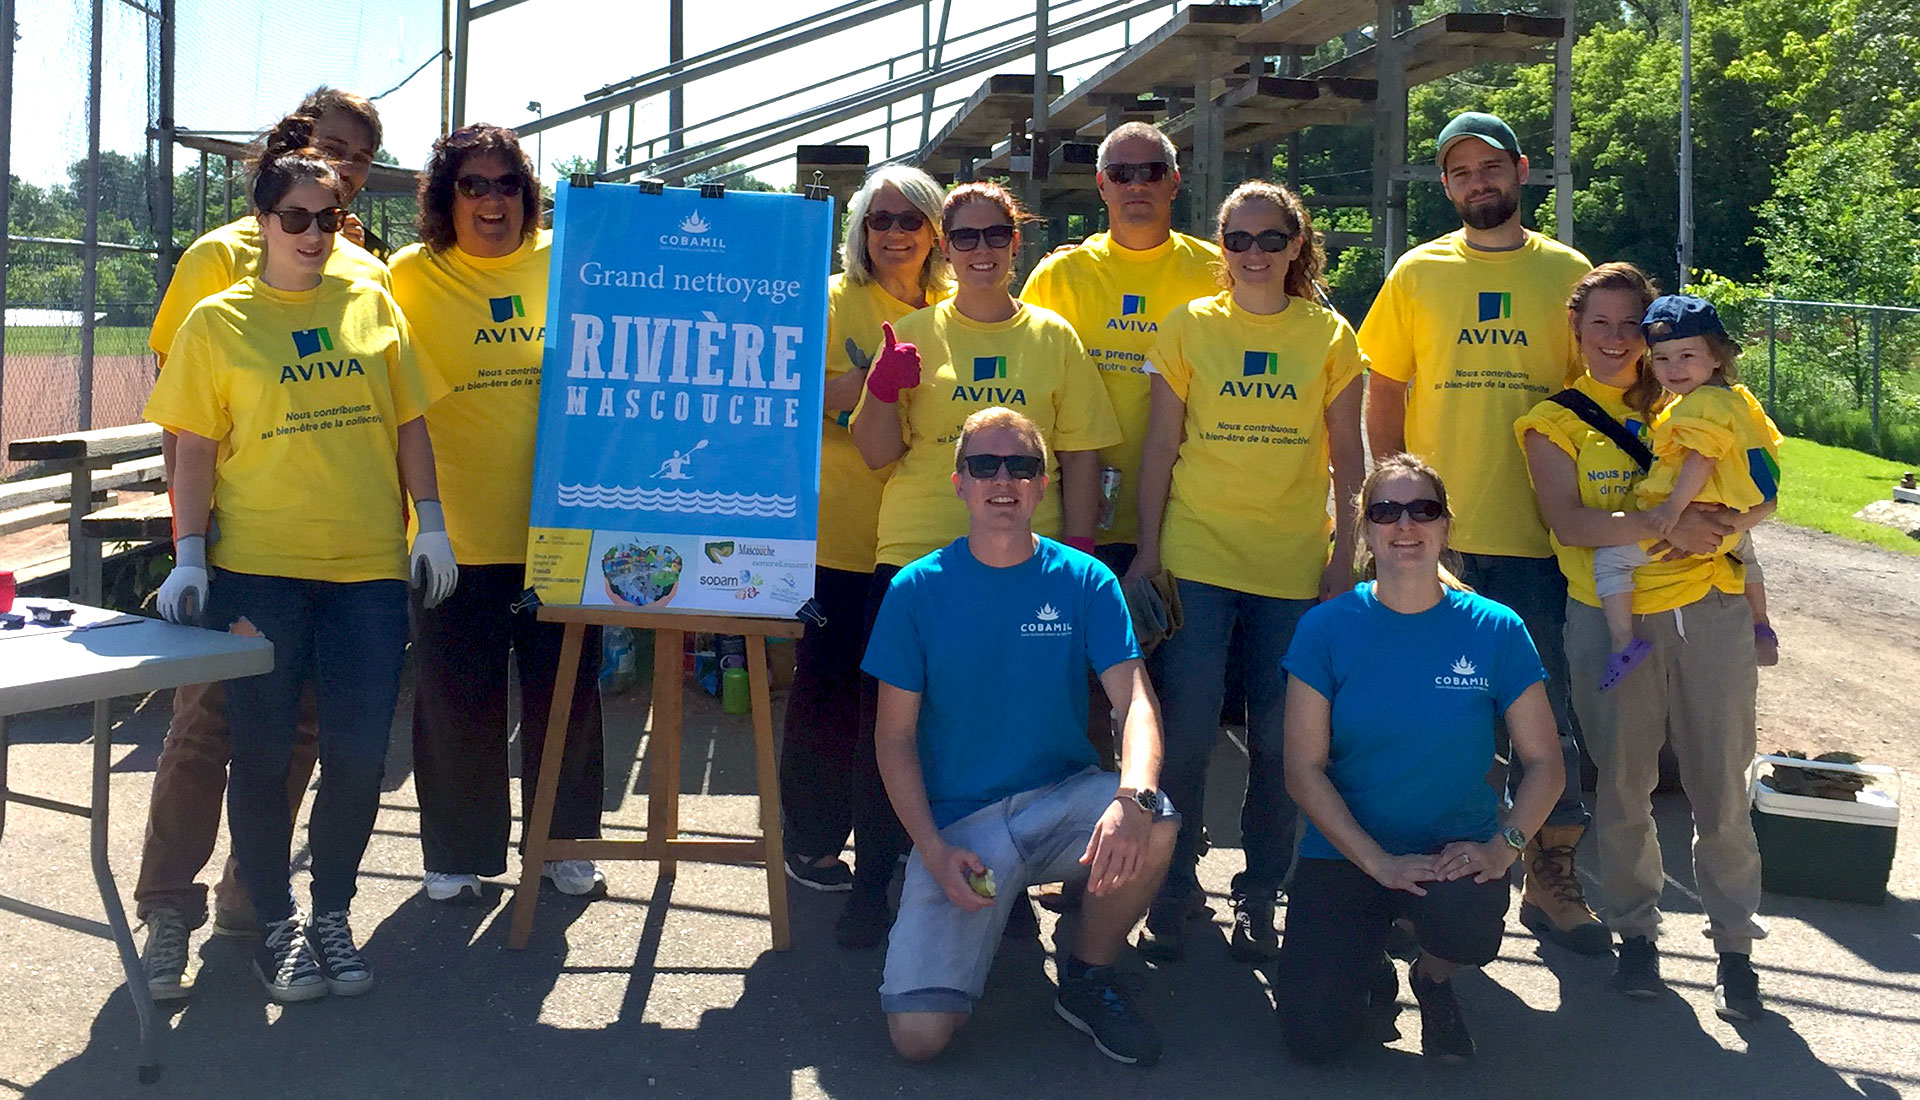 Charity representatives at the river cleanup in Quebec